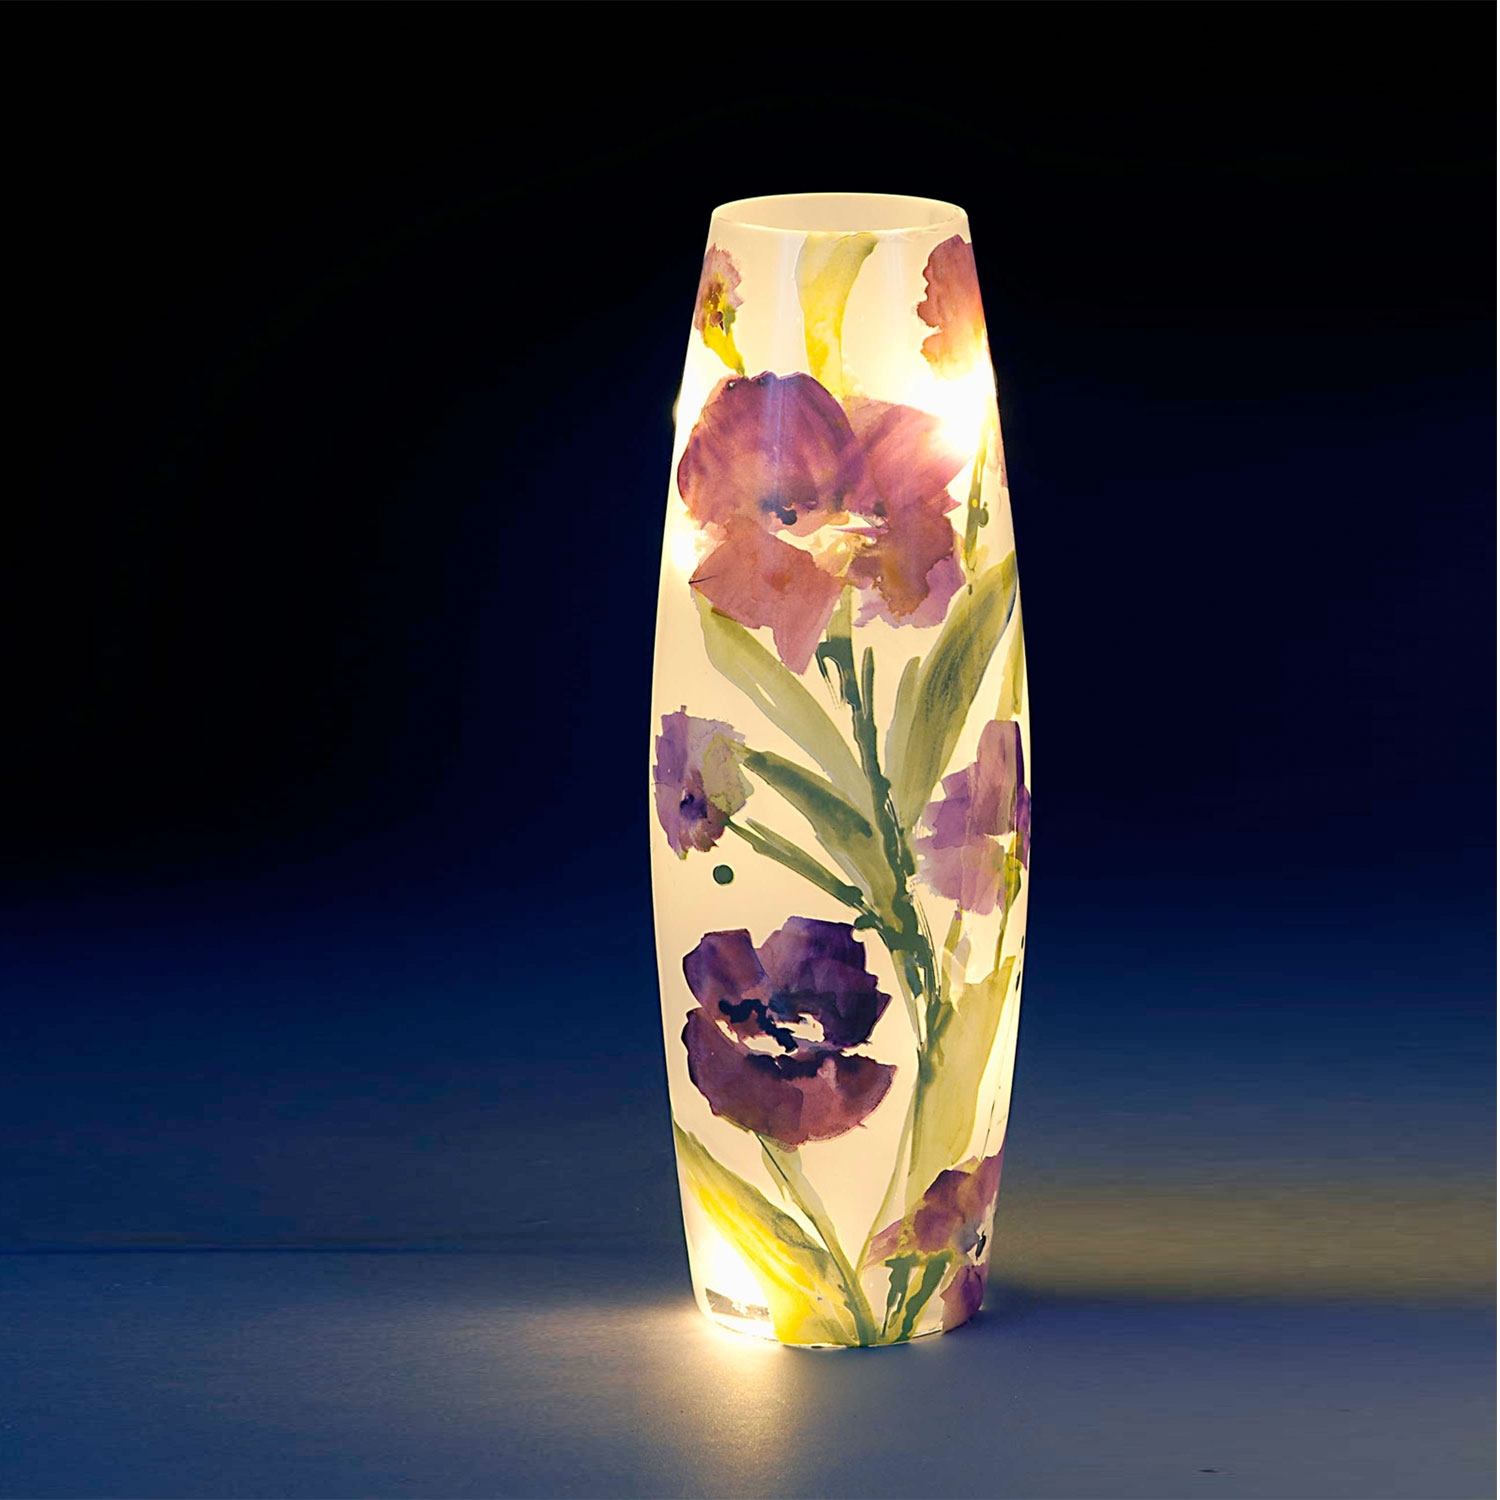 Image of One Large Glass LED Vase with Purple Floral Design